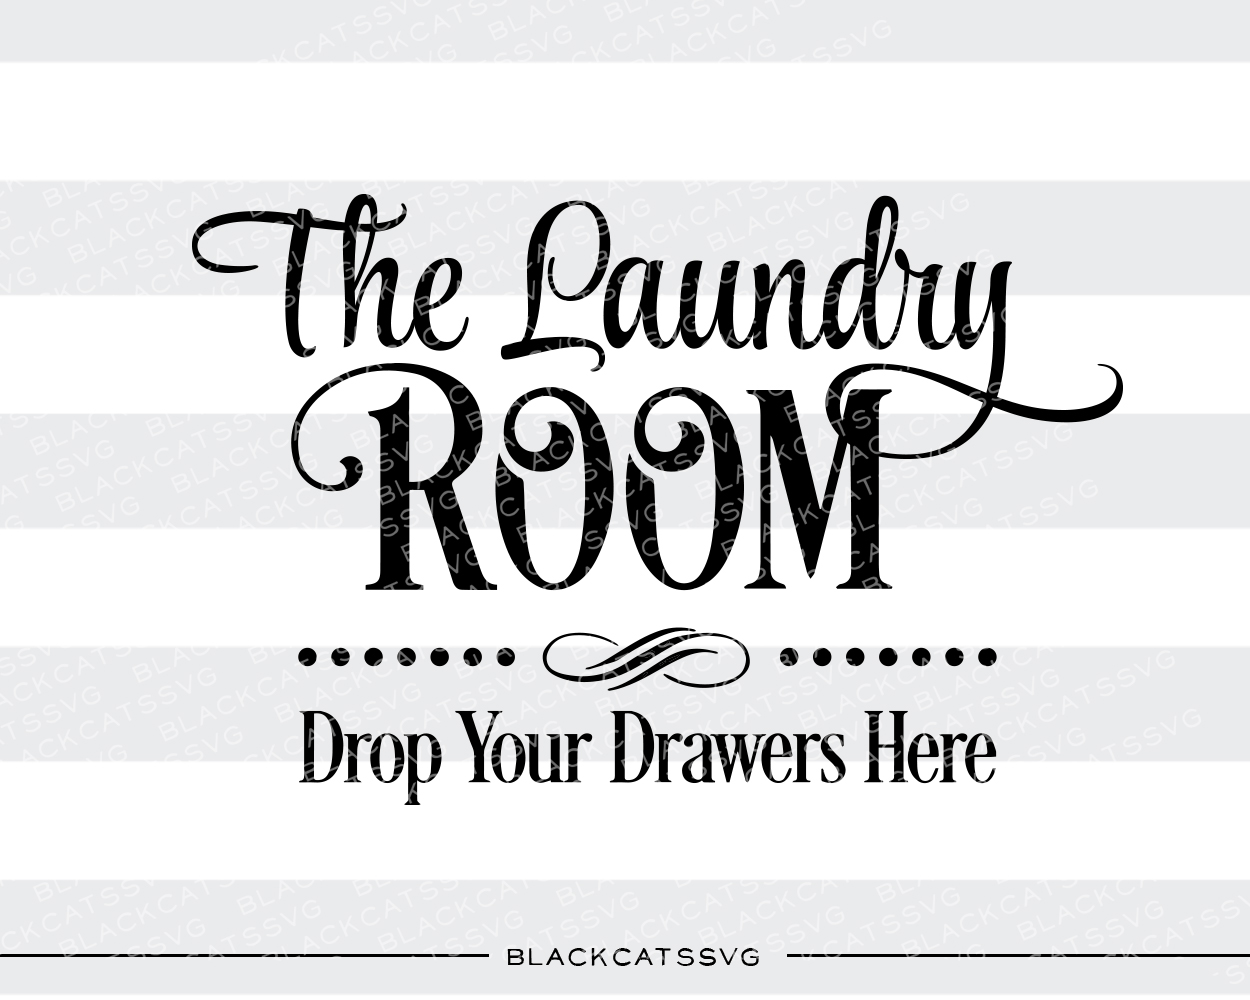 Laundry Room - Drop Your Drawers Here Lavandería Archivo de Corte Craft Por BlackCatsSVG